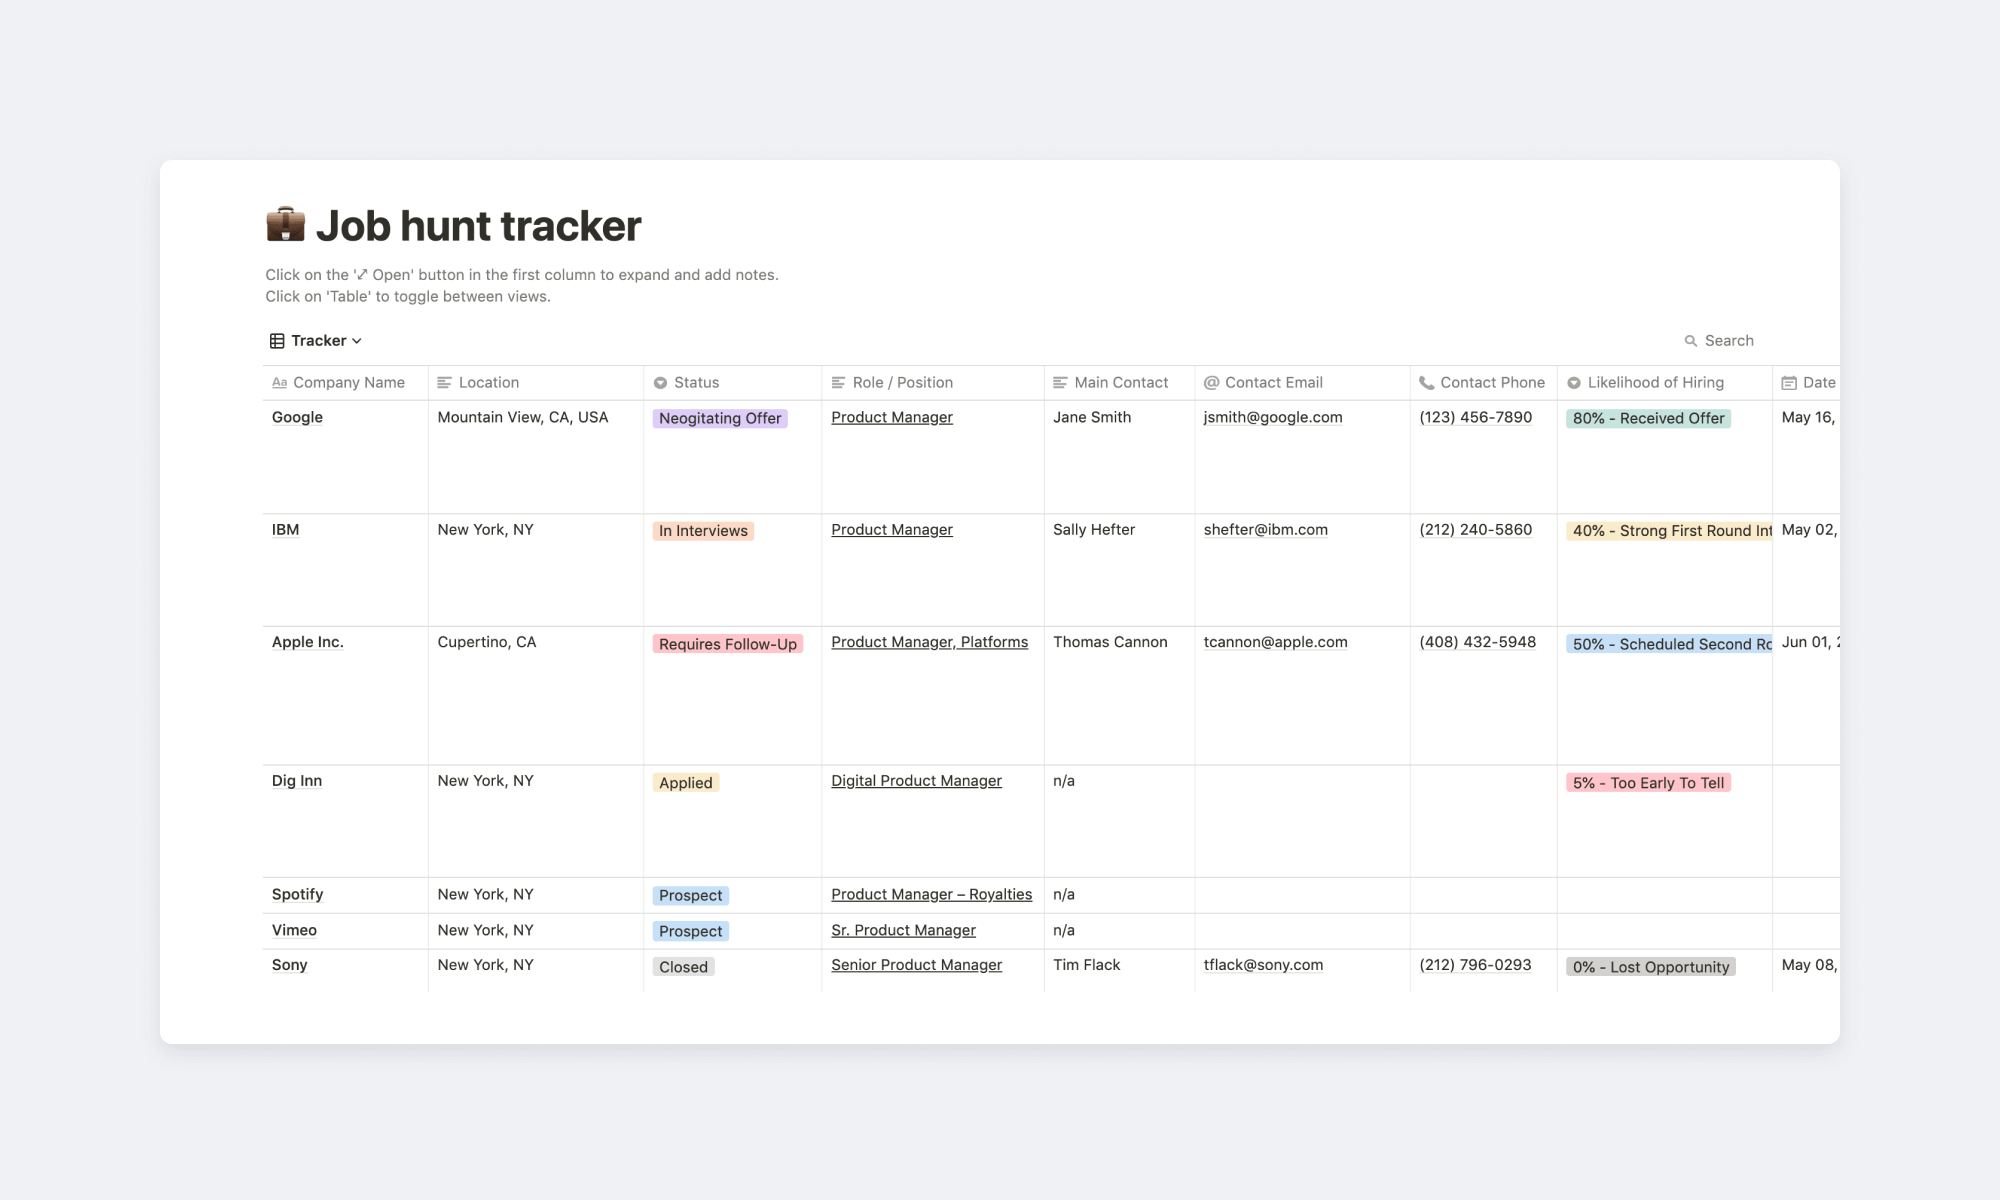 Job hunt tracker